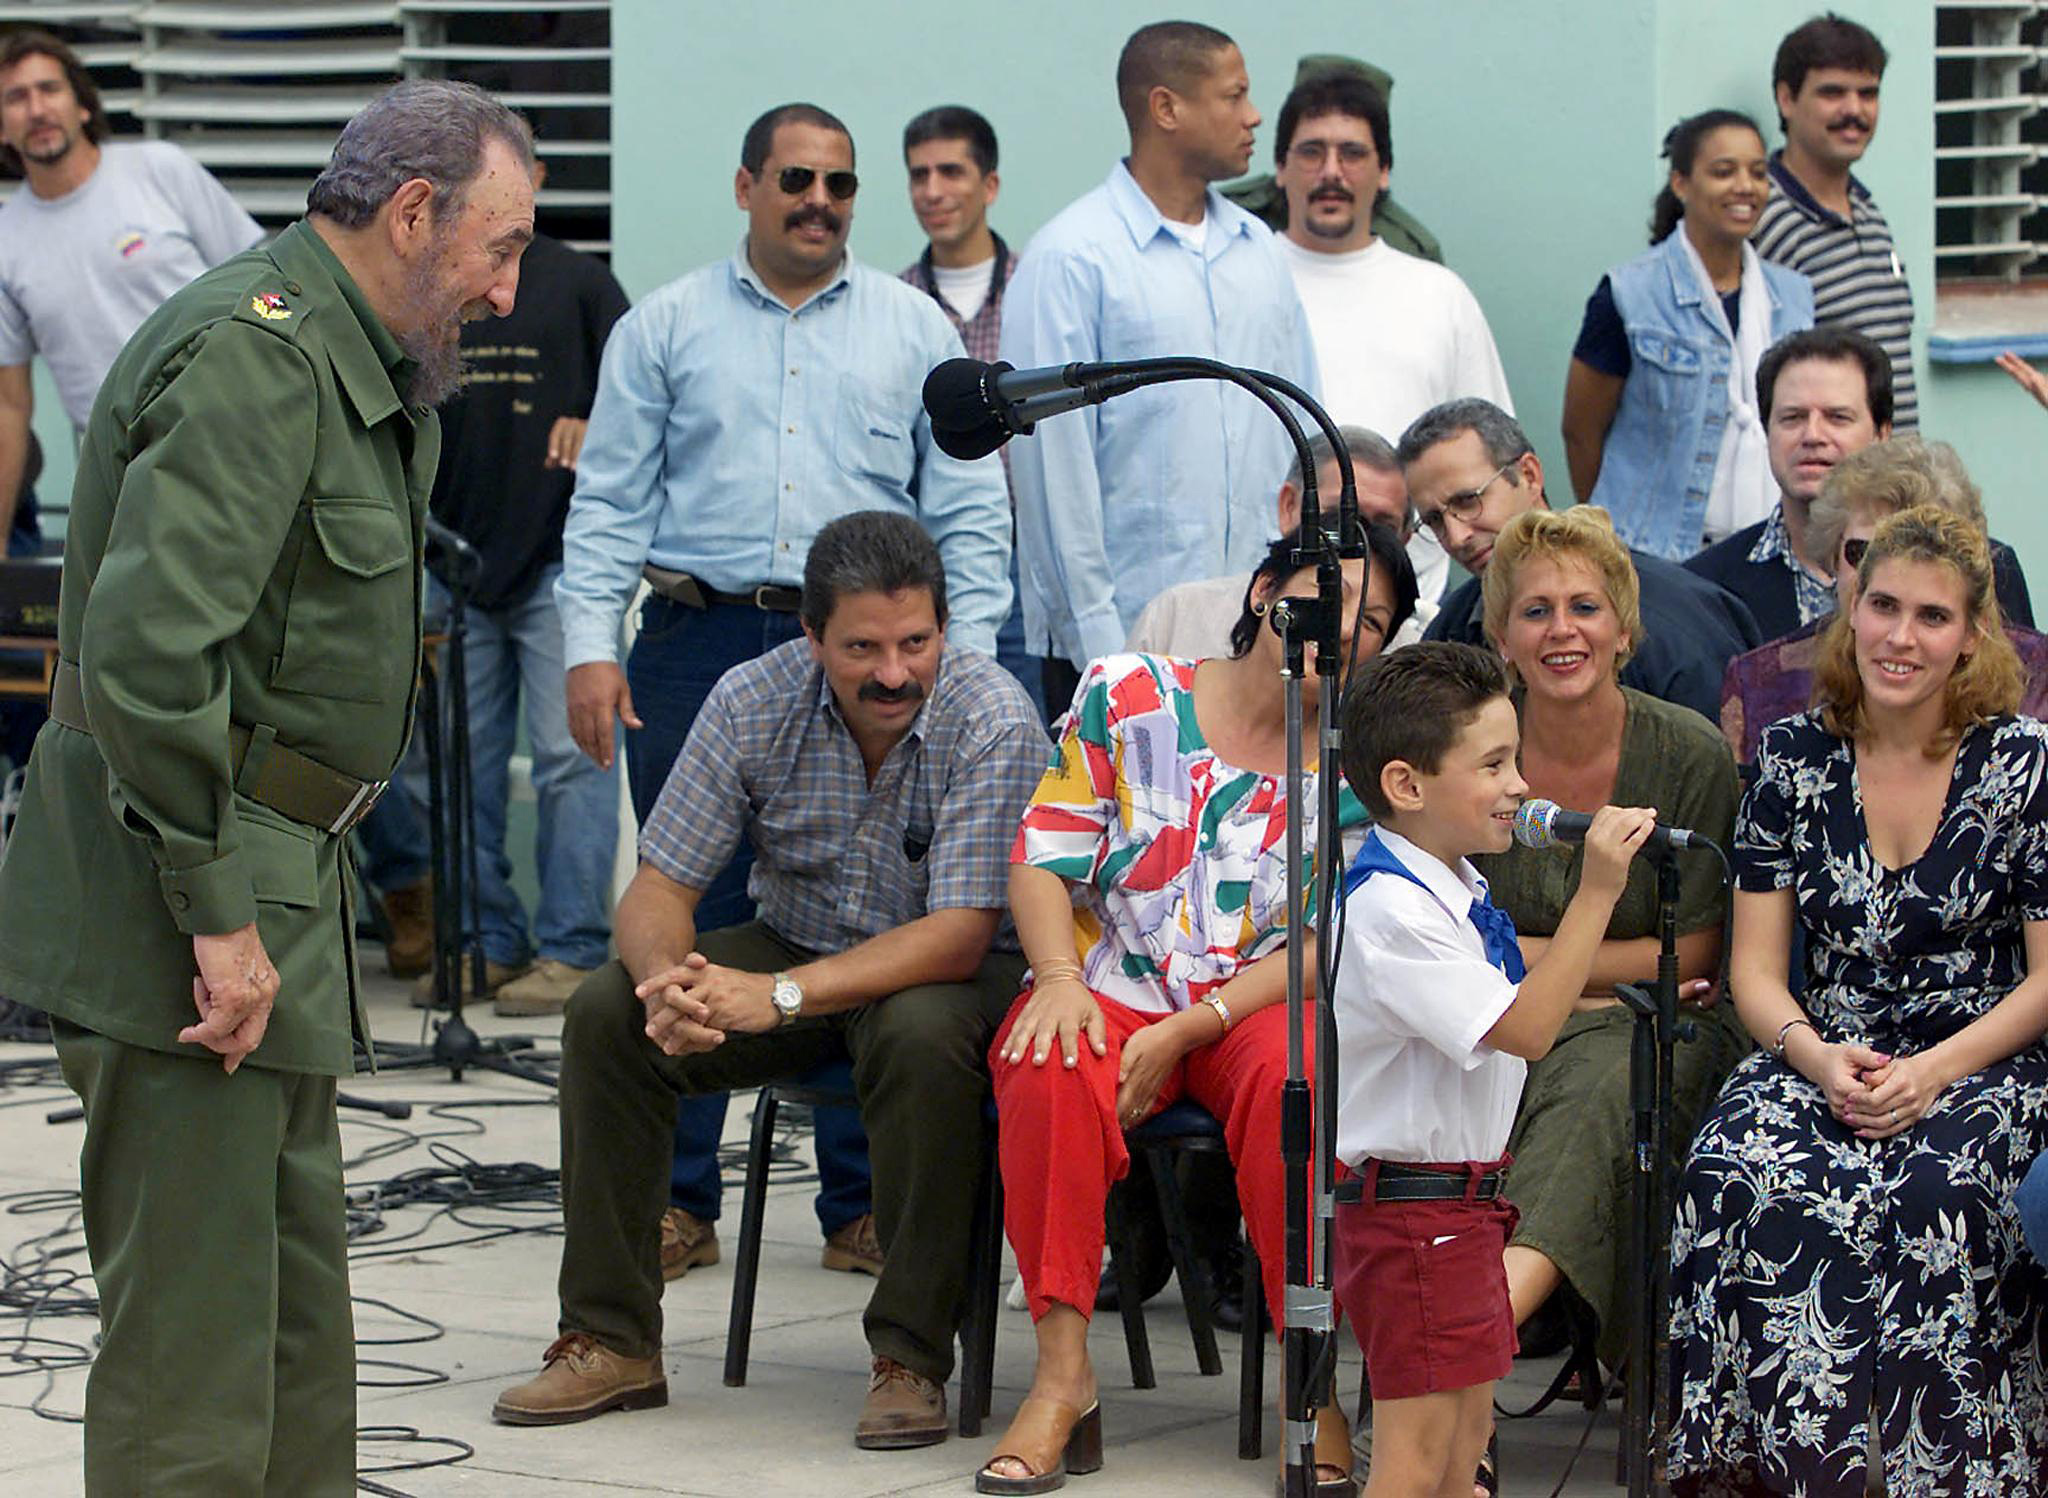 Cuban President Fidel Castro looks at Elian Gonzalez, a former castaway who was returned from the United States, during a party for his seventh birthday at a school in Cardenas, Cuba, on Dec. 6, 2000. Family members and teachers are seated in the background.